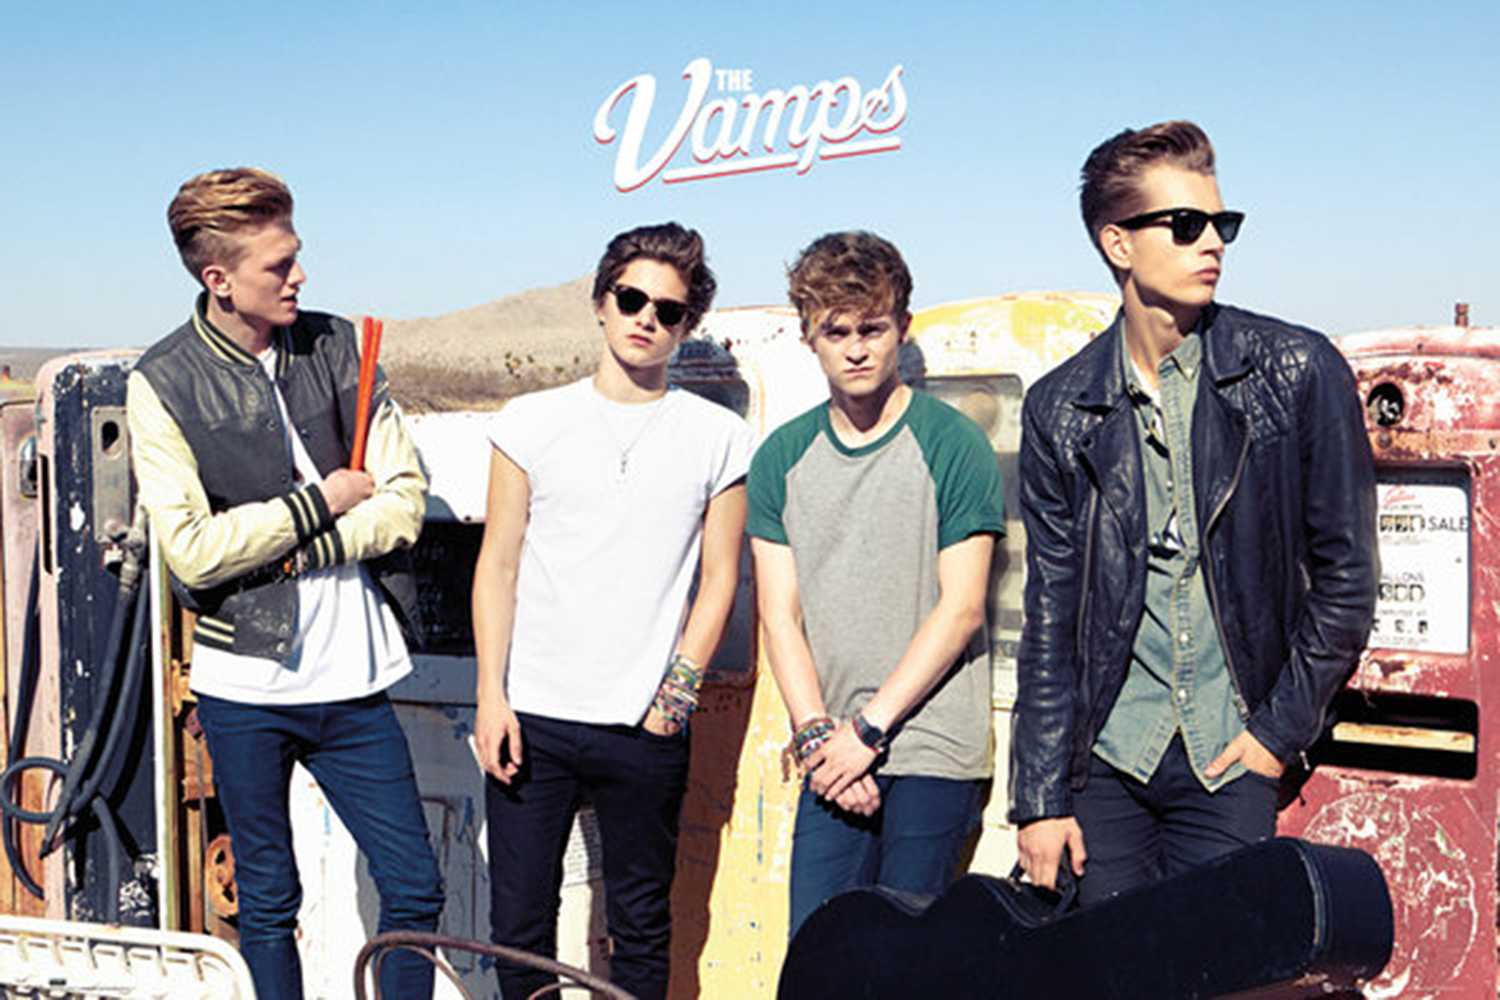 meet the vamps all songs